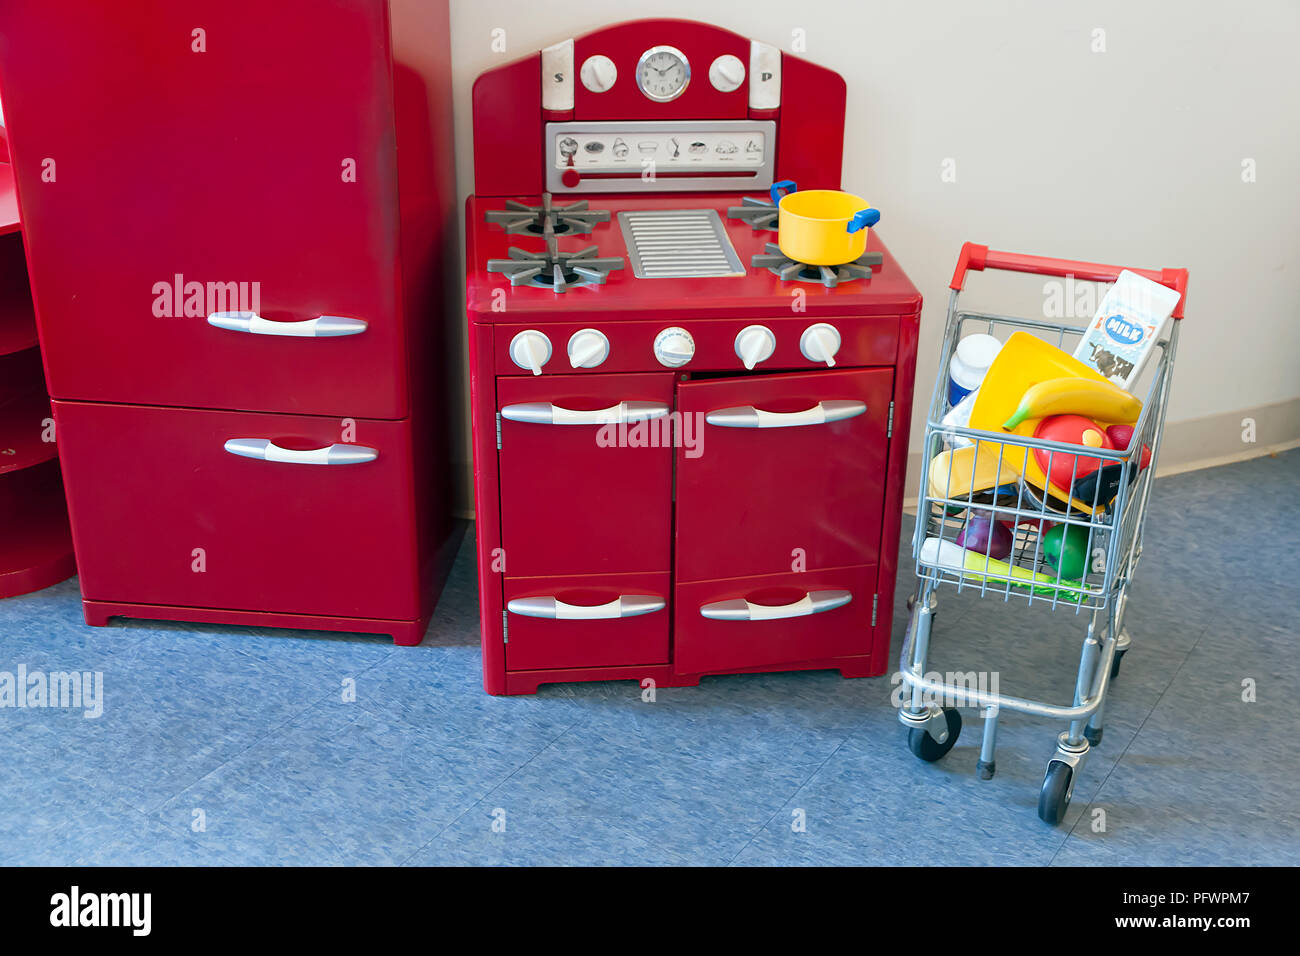 Cooktop stove, oven, refrigerator and shopping cart toys for children. - Stock Image